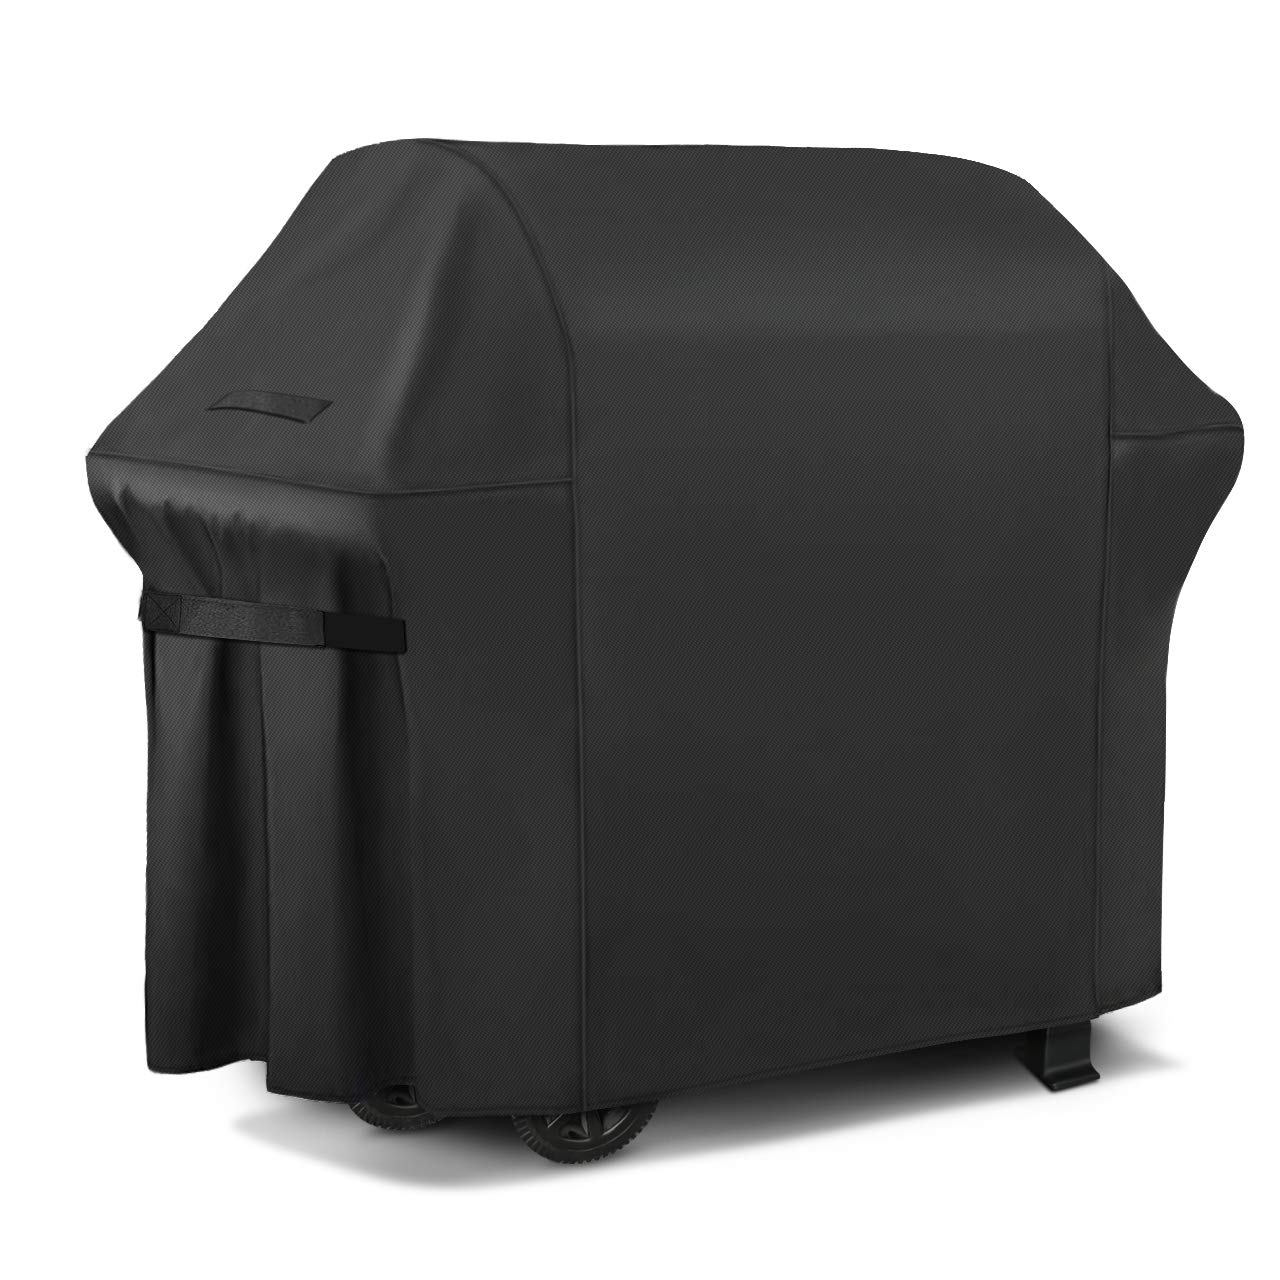 iCOVER Gas Grill Cover-72 inch 600D Canvas Waterproof Fade Resistant Heavy Duty Barbeque BBQ Grill Cover Sized for Weber,Char Broil,Holland, Jenn Air,Brinkmann.G21655.